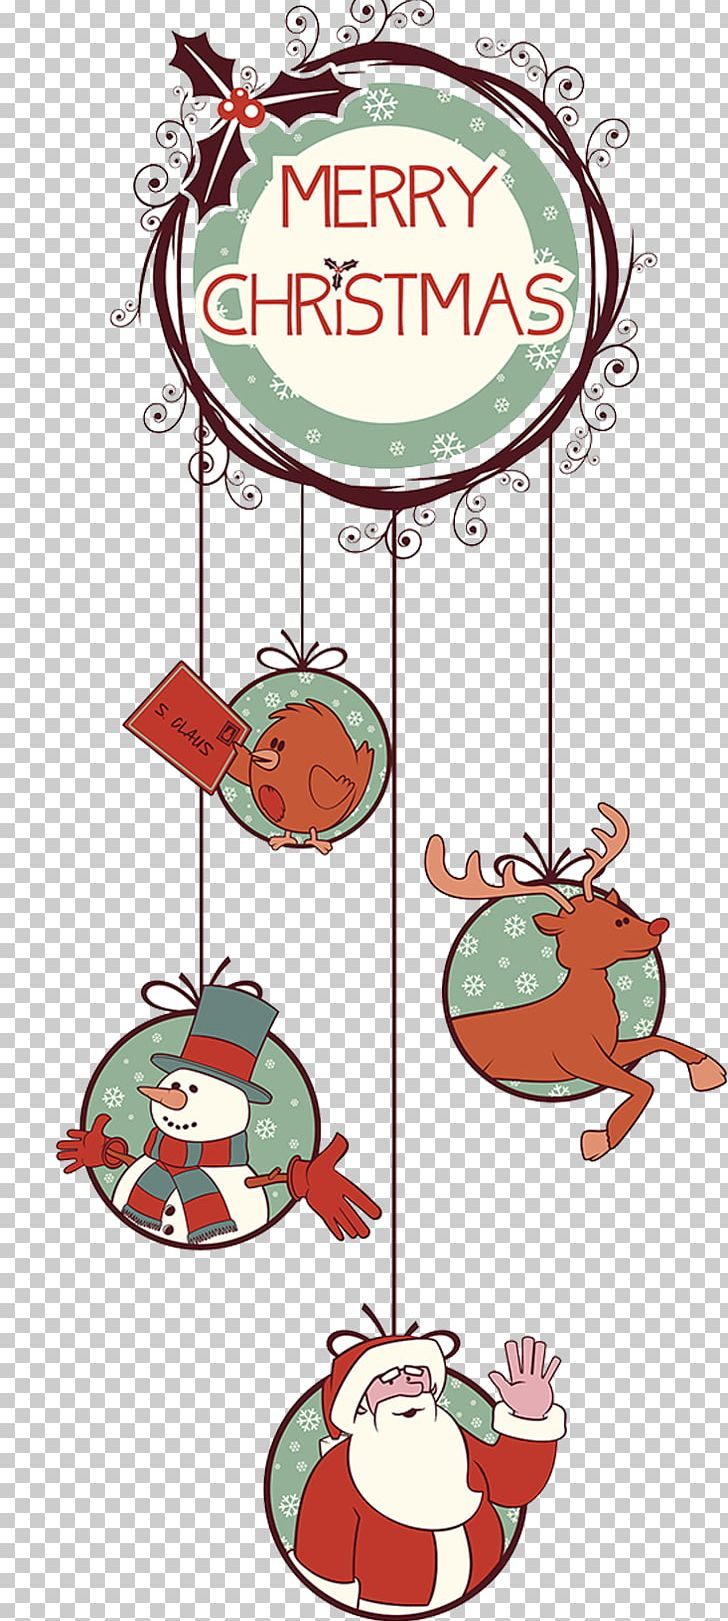 Rudolph Christmas Decorations.Rudolph Christmas Tree Christmas Decoration Png Clipart